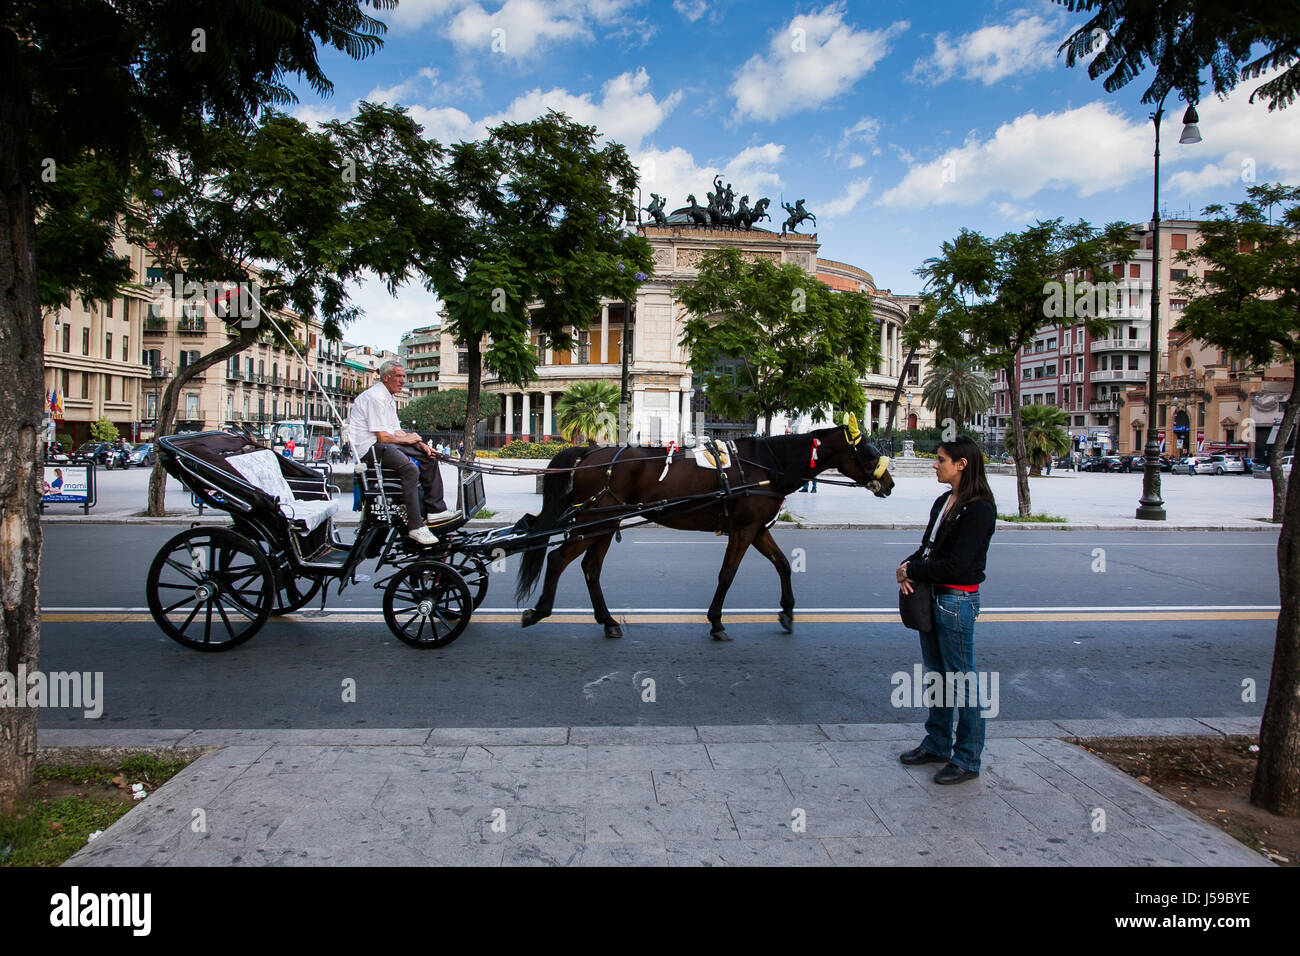 PALERMO, ITALY - October 14, 2009: The Politeama Garibaldi theater in Palermo, Sicily, horse cart Stock Photo